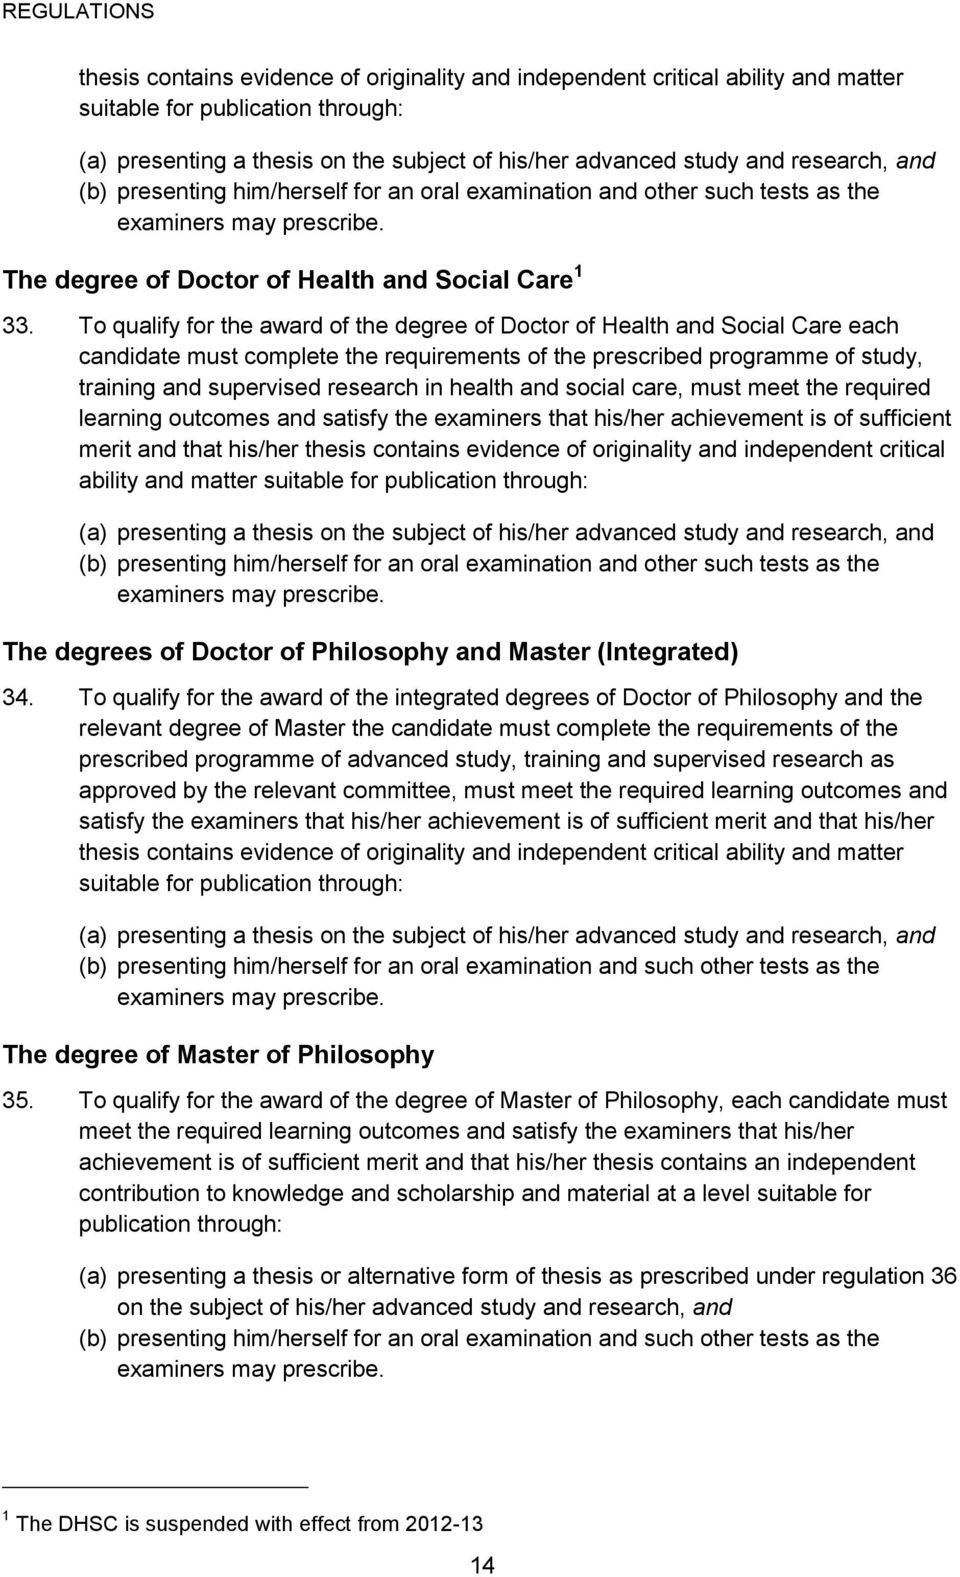 To qualify for the award of the degree of Doctor of Health and Social Care each candidate must complete the requirements of the prescribed programme of study, training and supervised research in